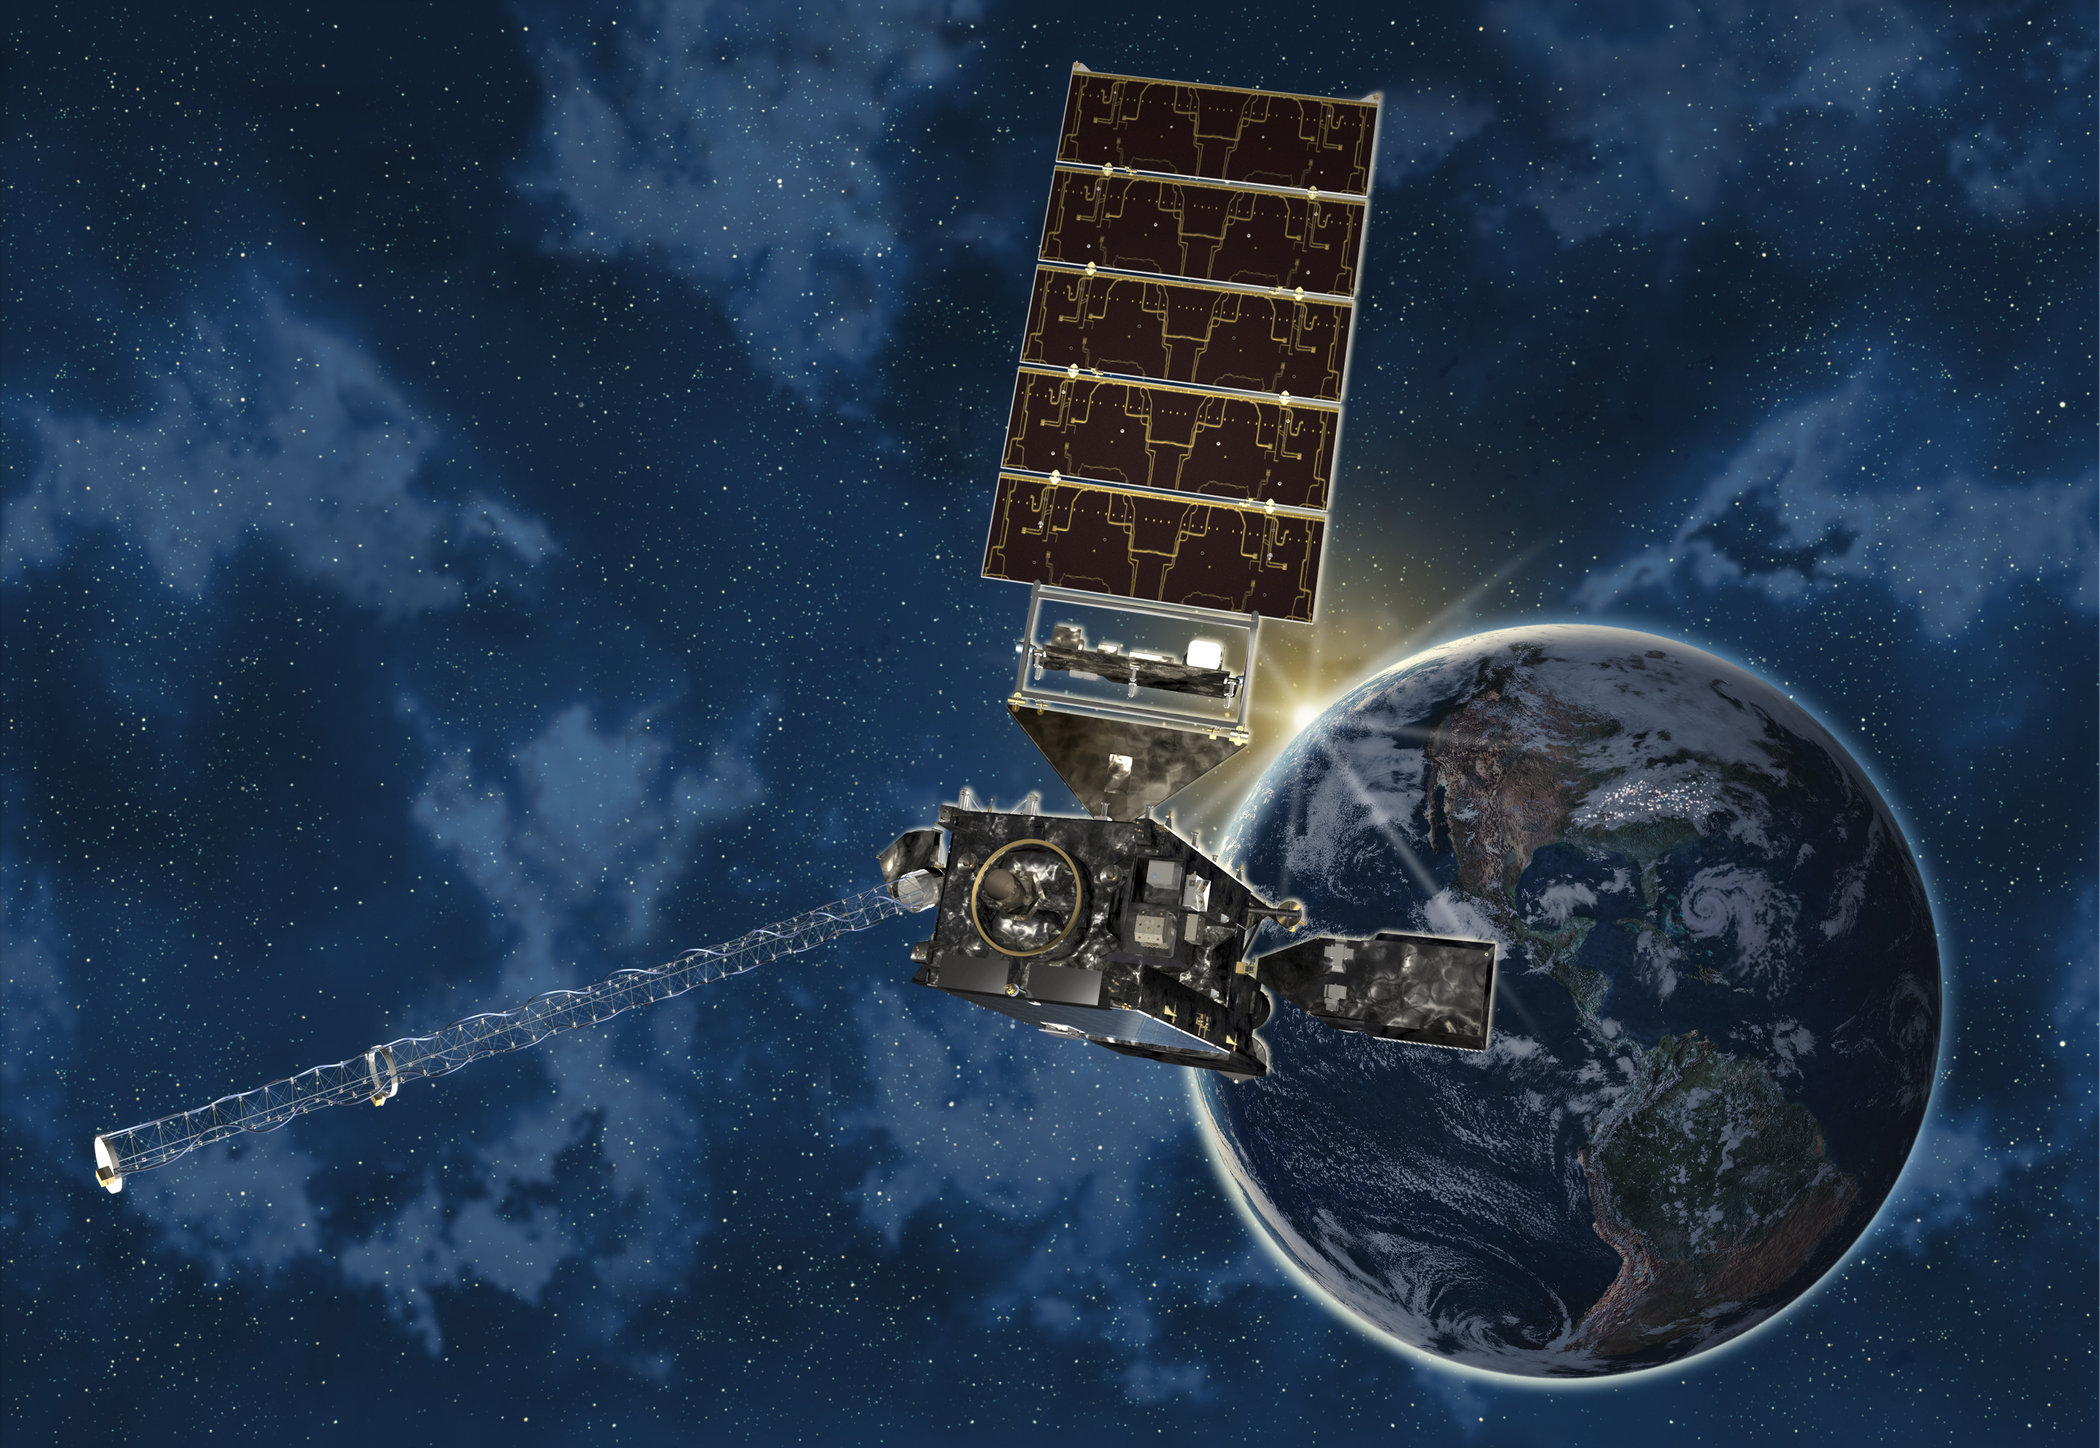 GOES-R satellite will revolutionize weather forecasting